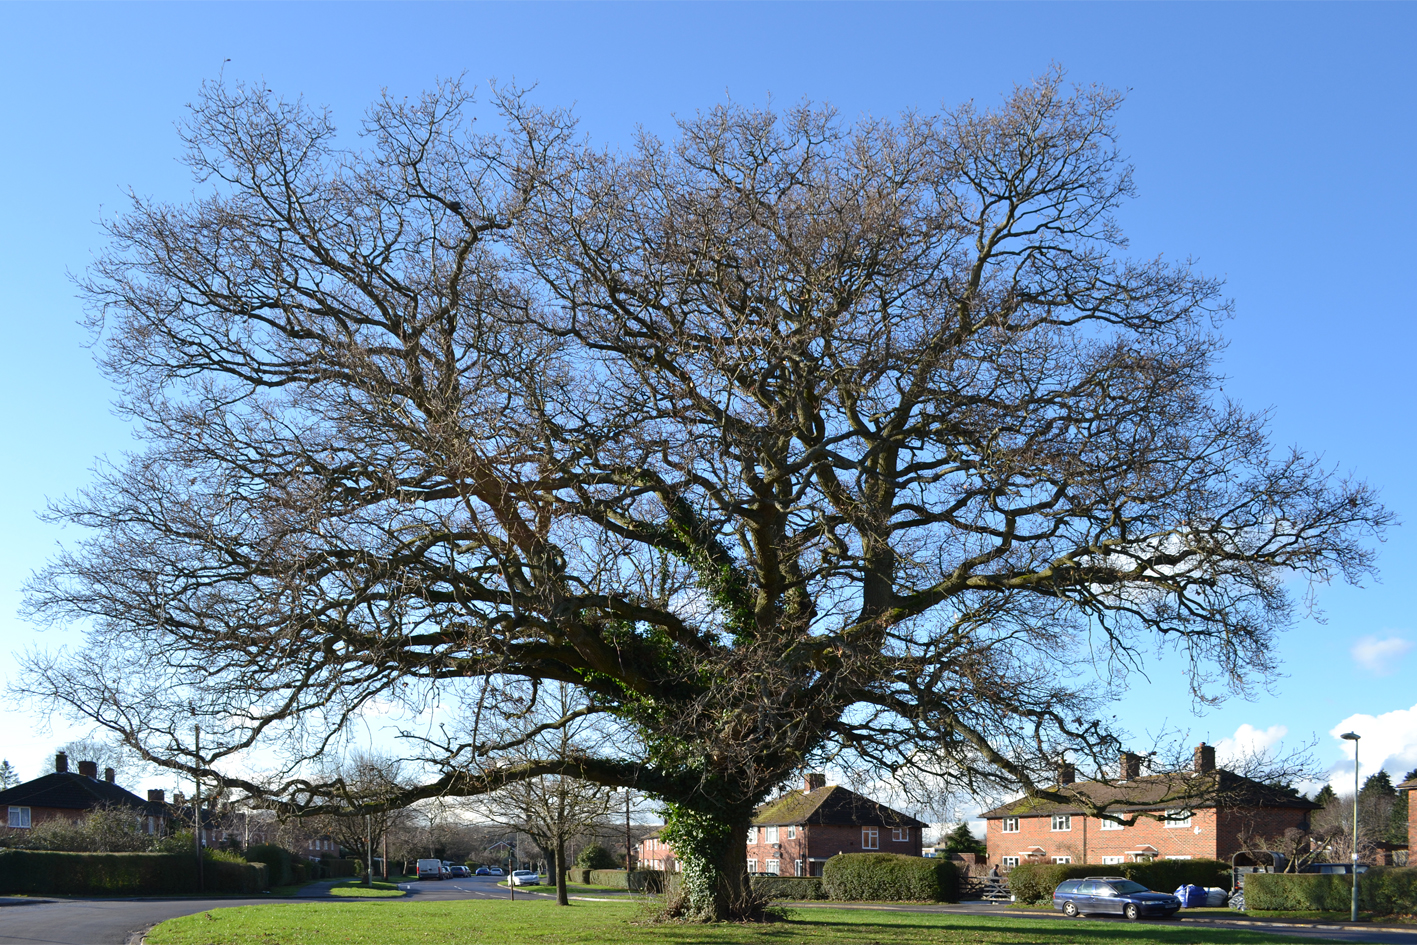 Merchistoun Oak